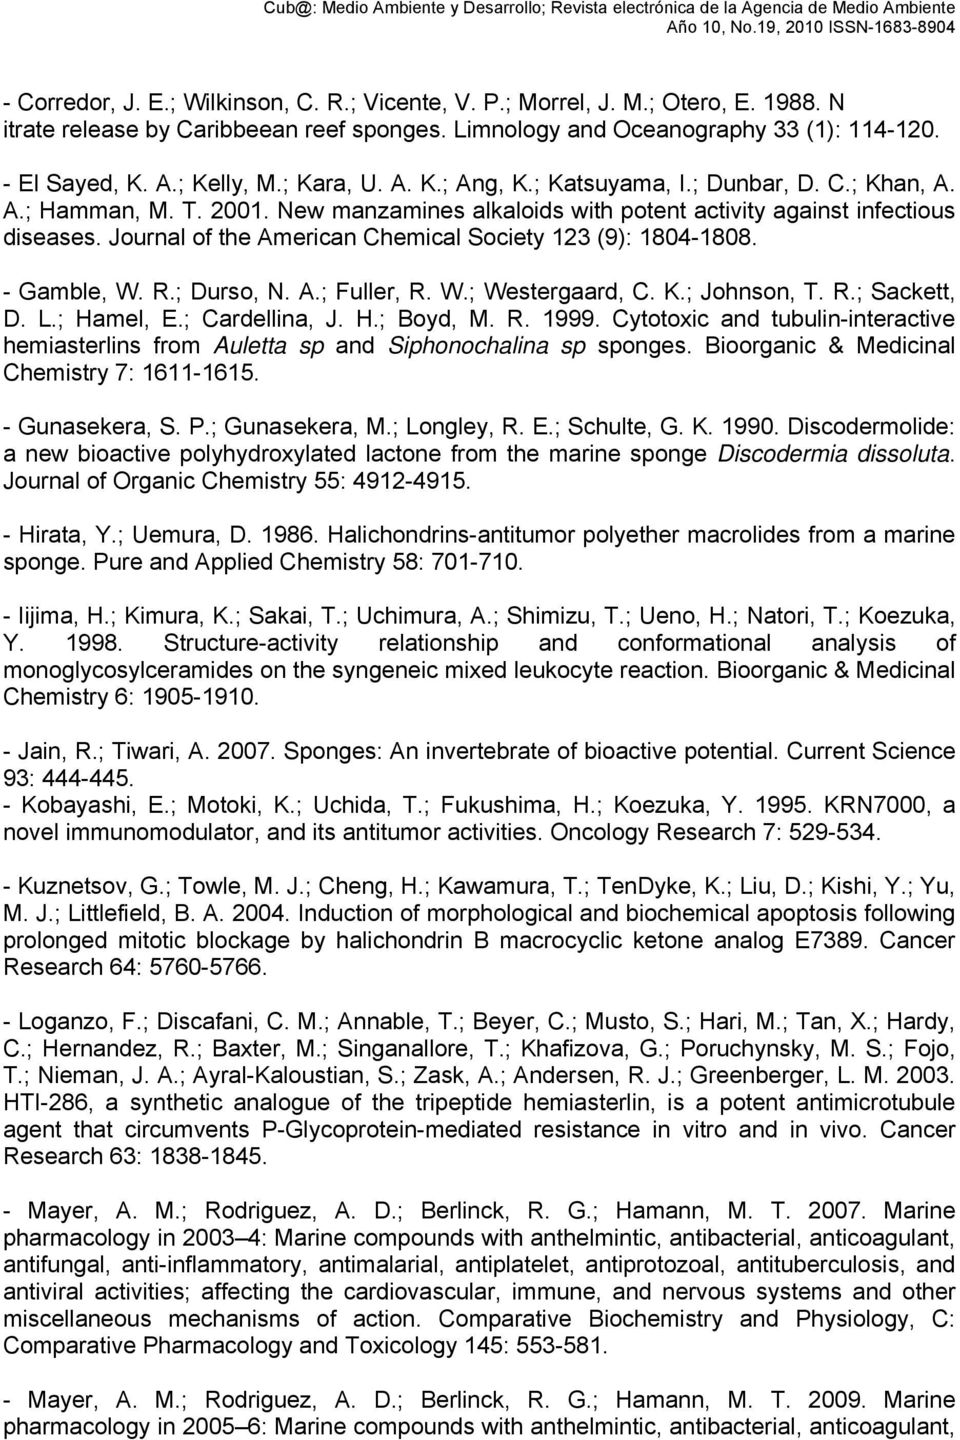 Journal of the American Chemical Society 123 (9): 1804-1808. - Gamble, W. R.; Durso, N. A.; Fuller, R. W.; Westergaard, C. K.; Johnson, T. R.; Sackett, D. L.; Hamel, E.; Cardellina, J. H.; Boyd, M. R. 1999.